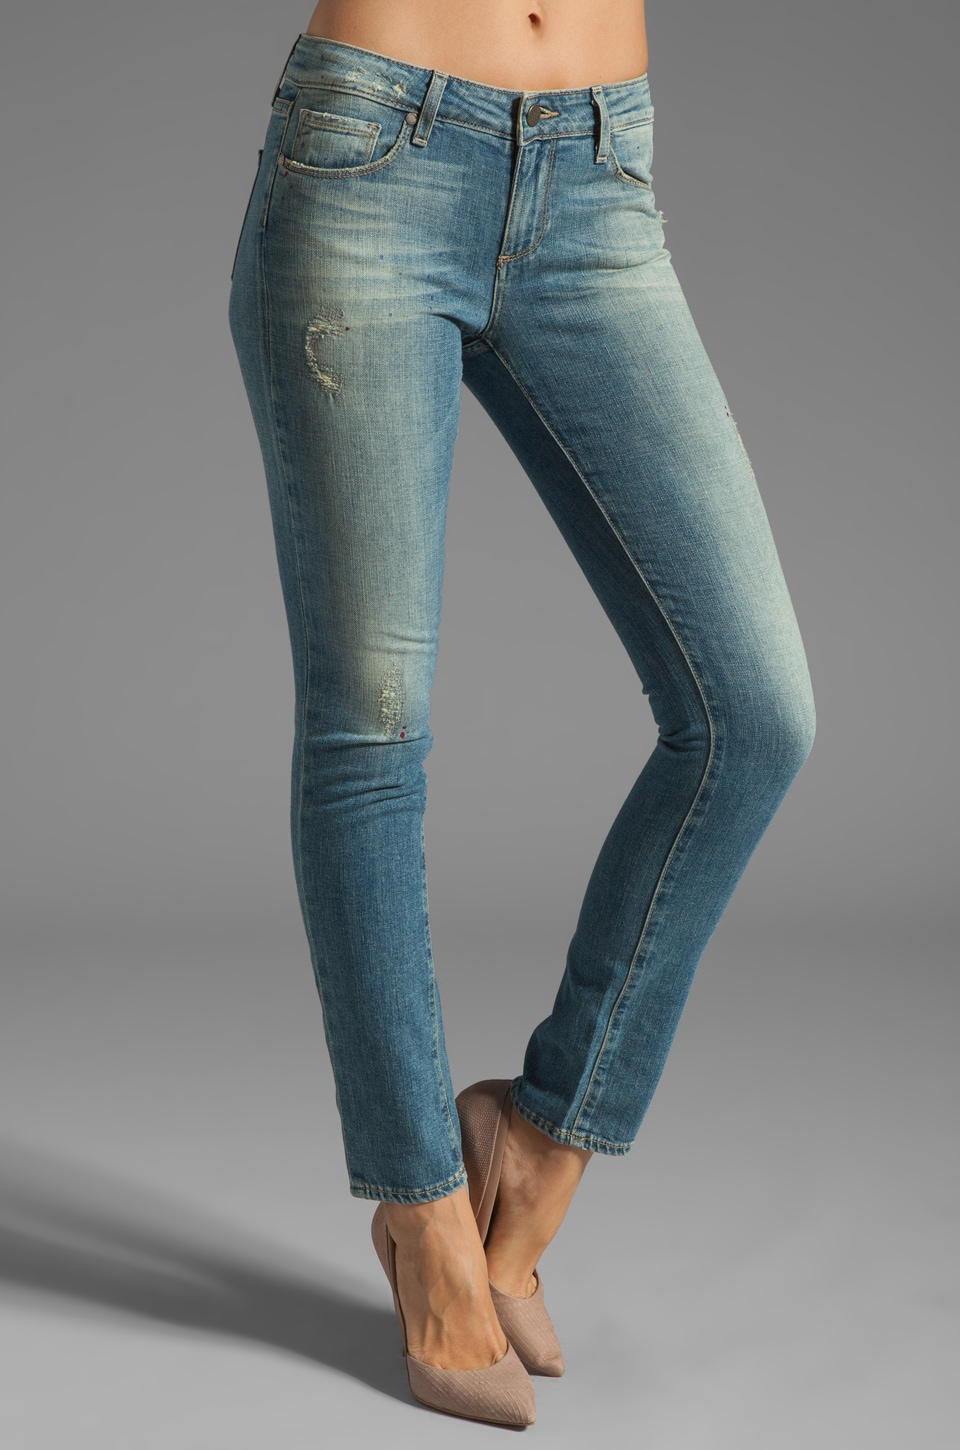 Paige Denim Skyline Ankle Peg in Monet